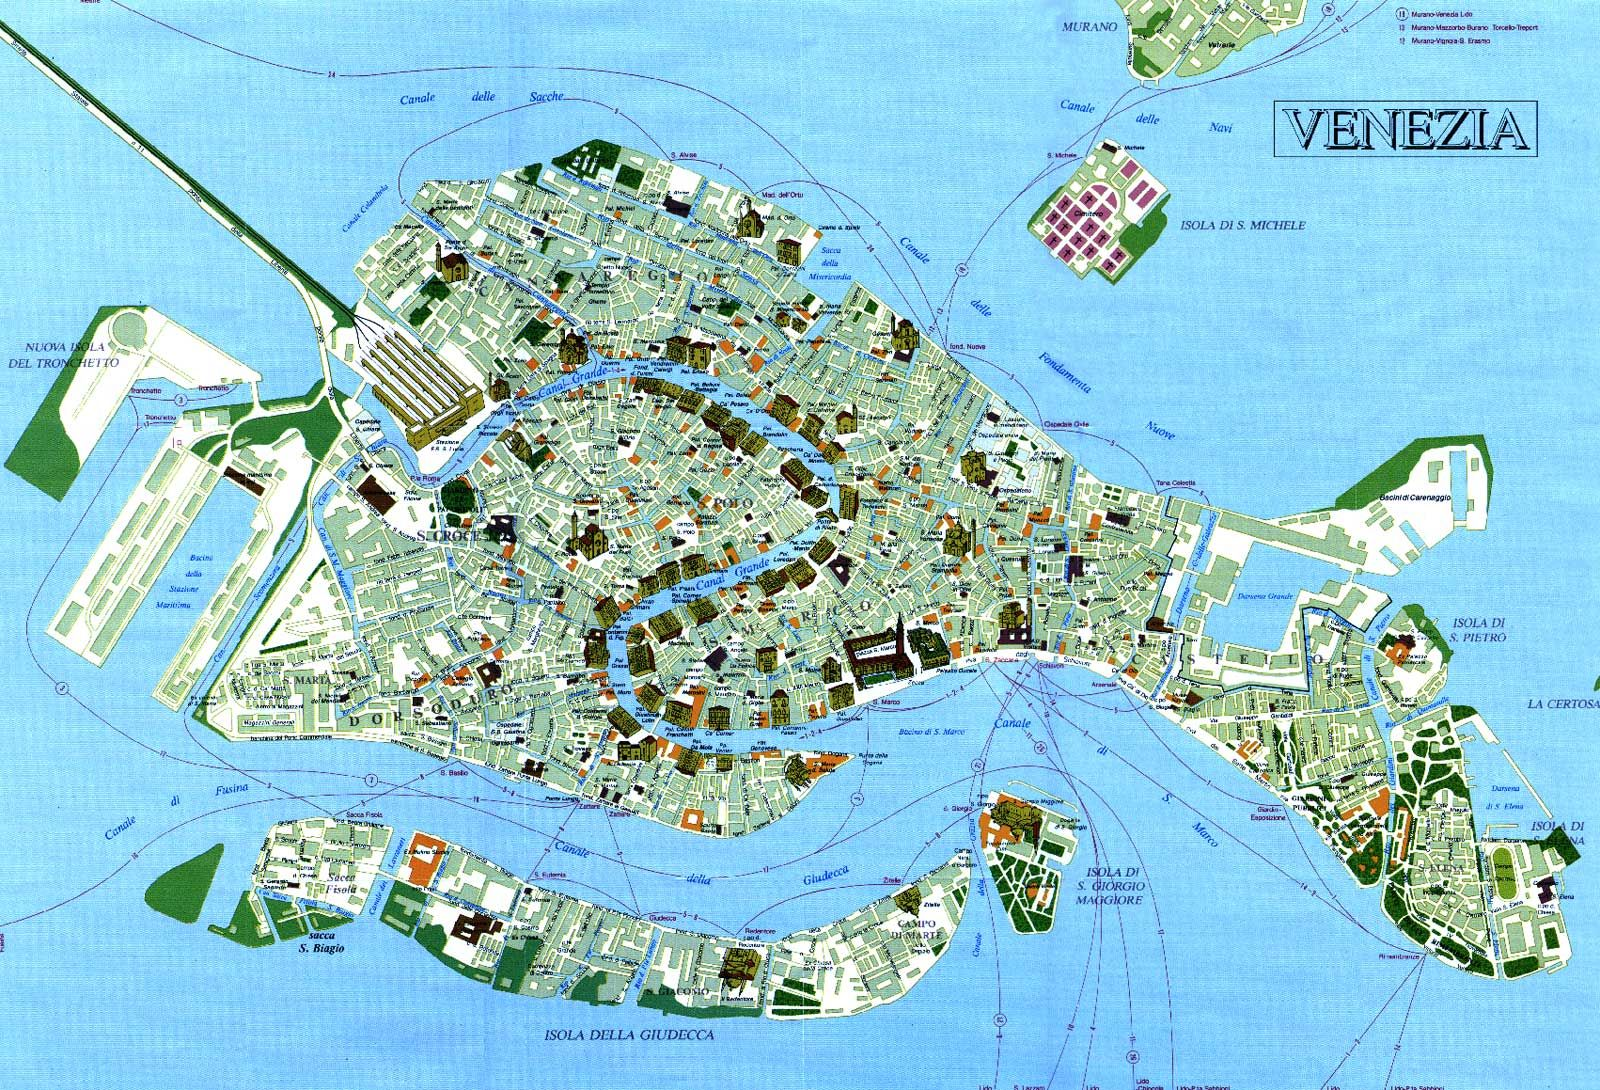 venice on map Google Search Trip to Italy Pinterest Tourist